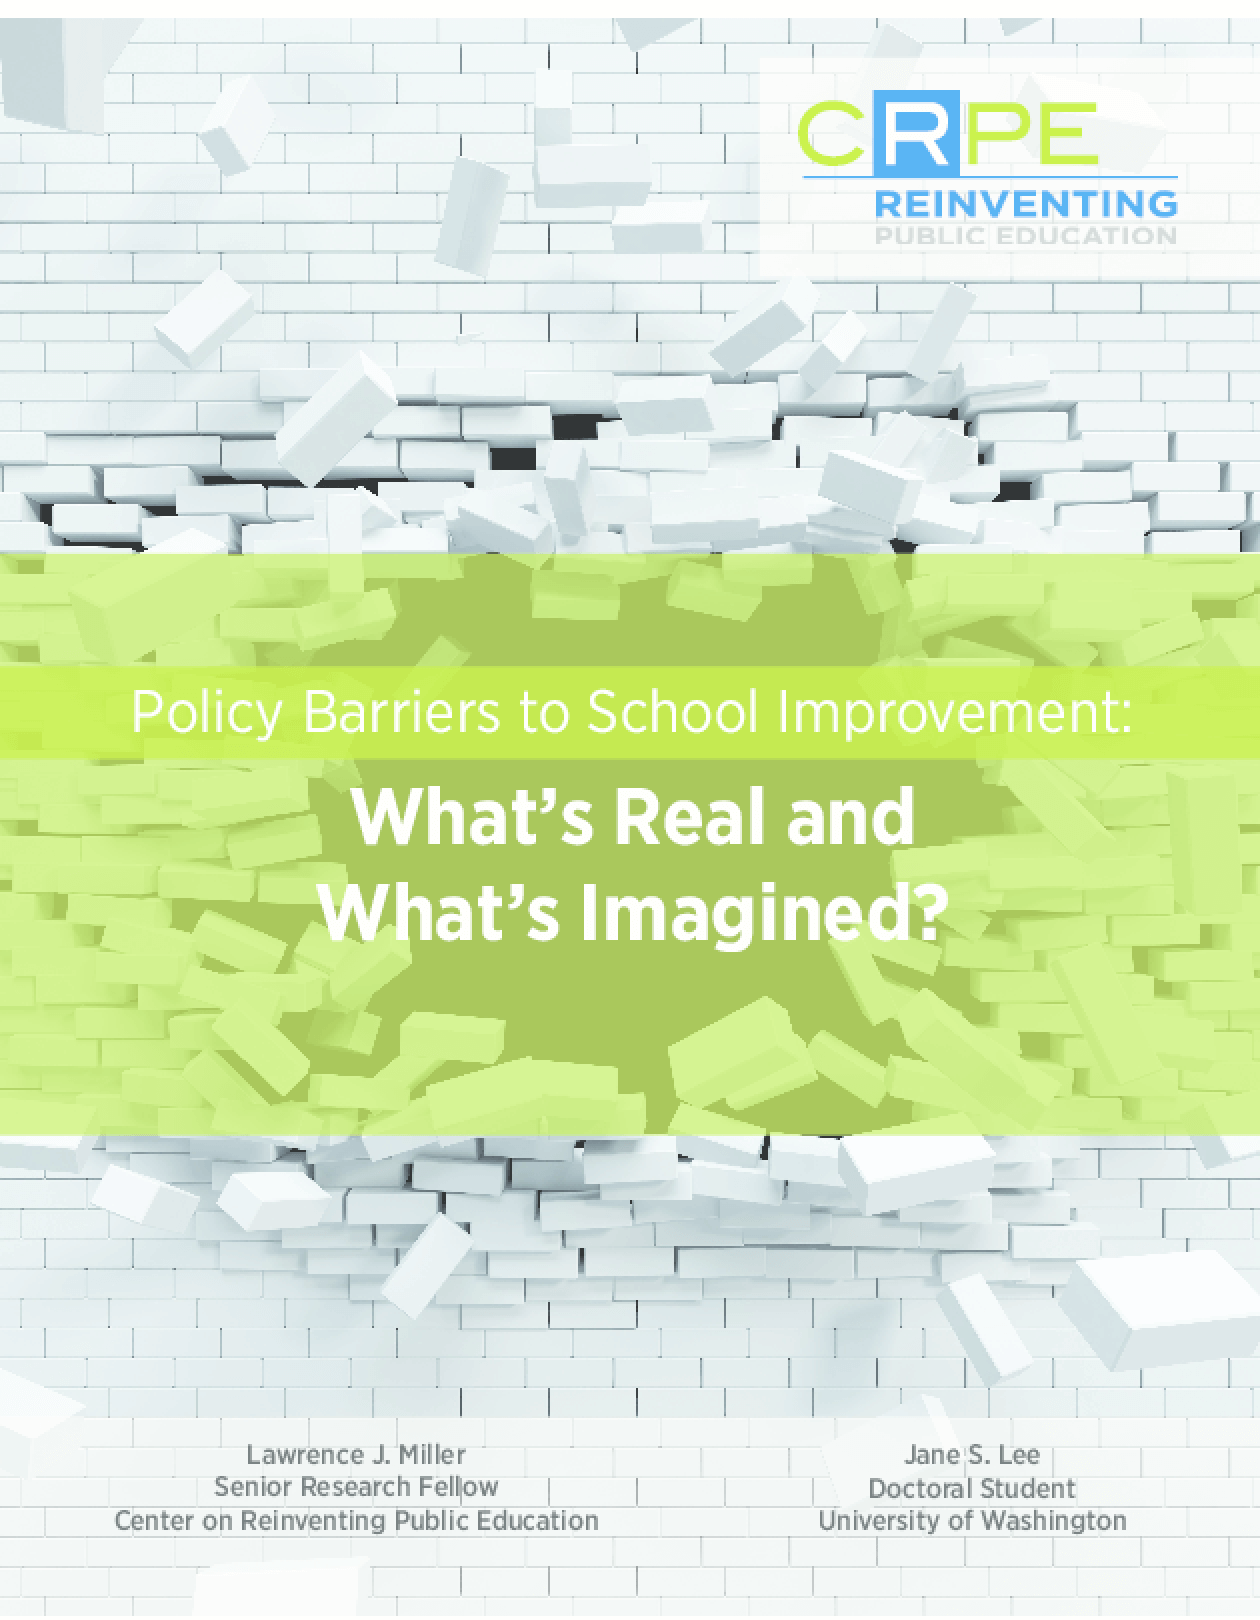 Policy Barriers to School Improvement: What's Real and What's Imagined?